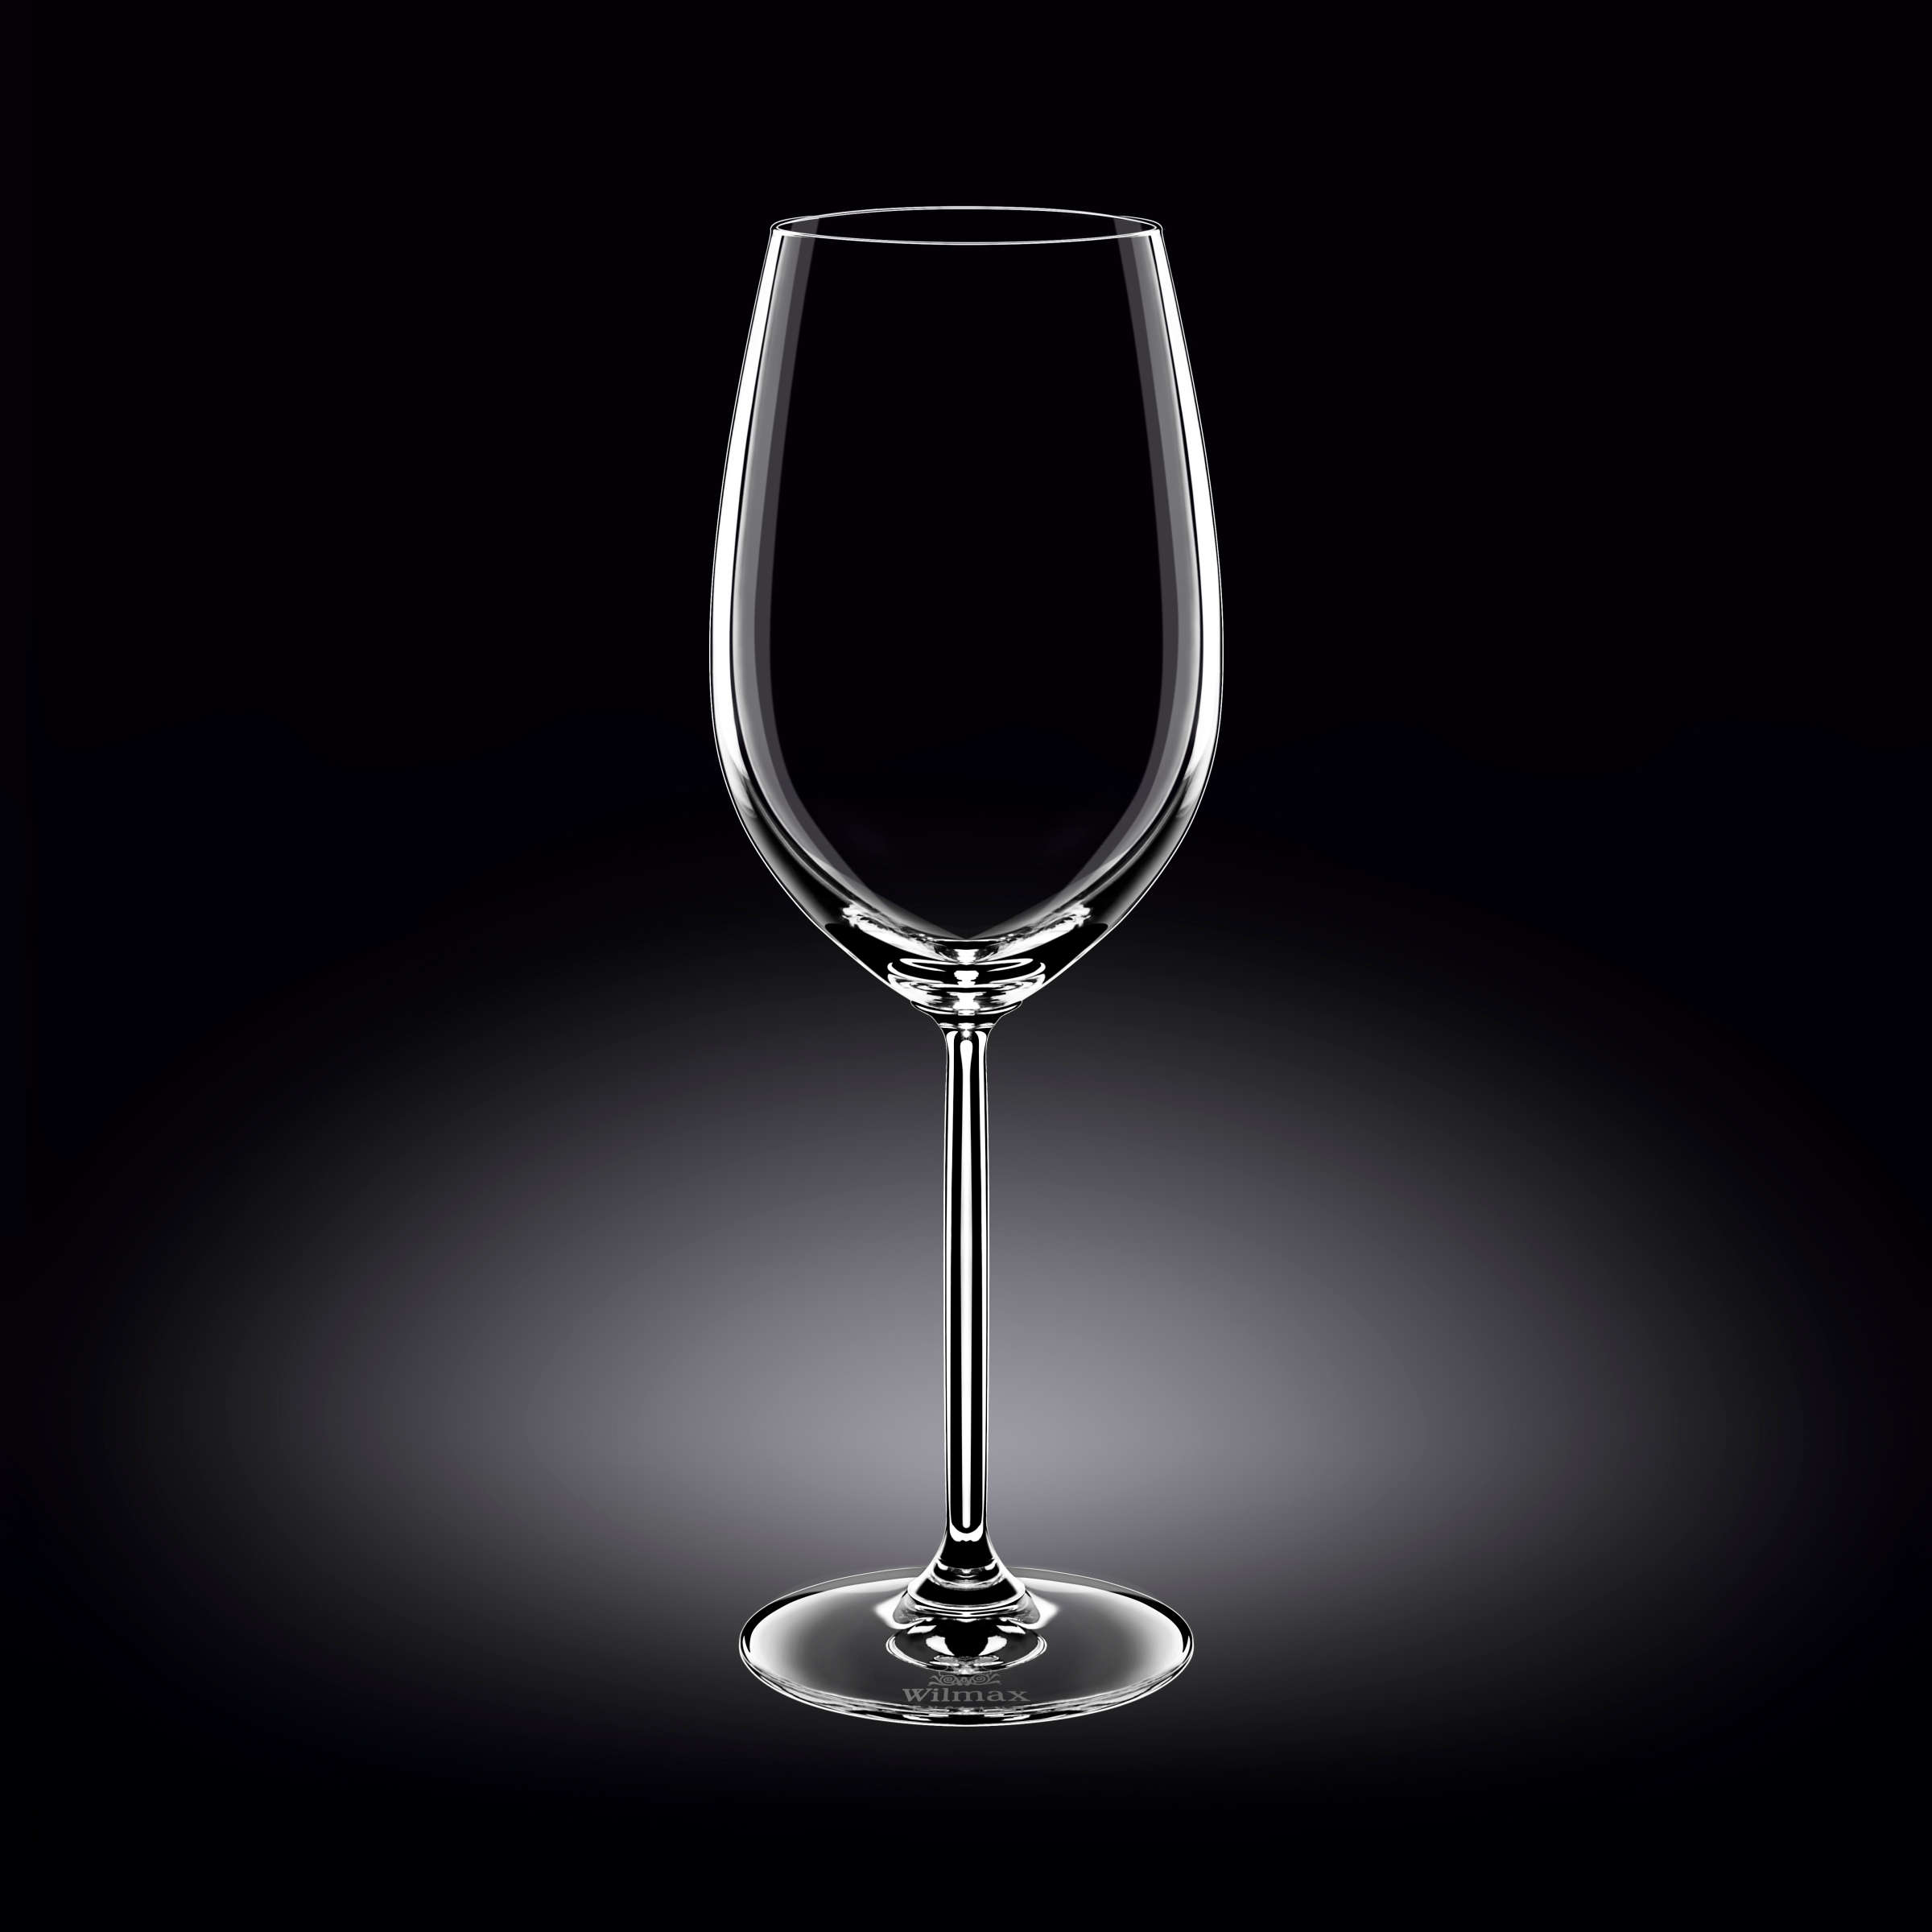 Wine Glass 20 oz | 600 ml